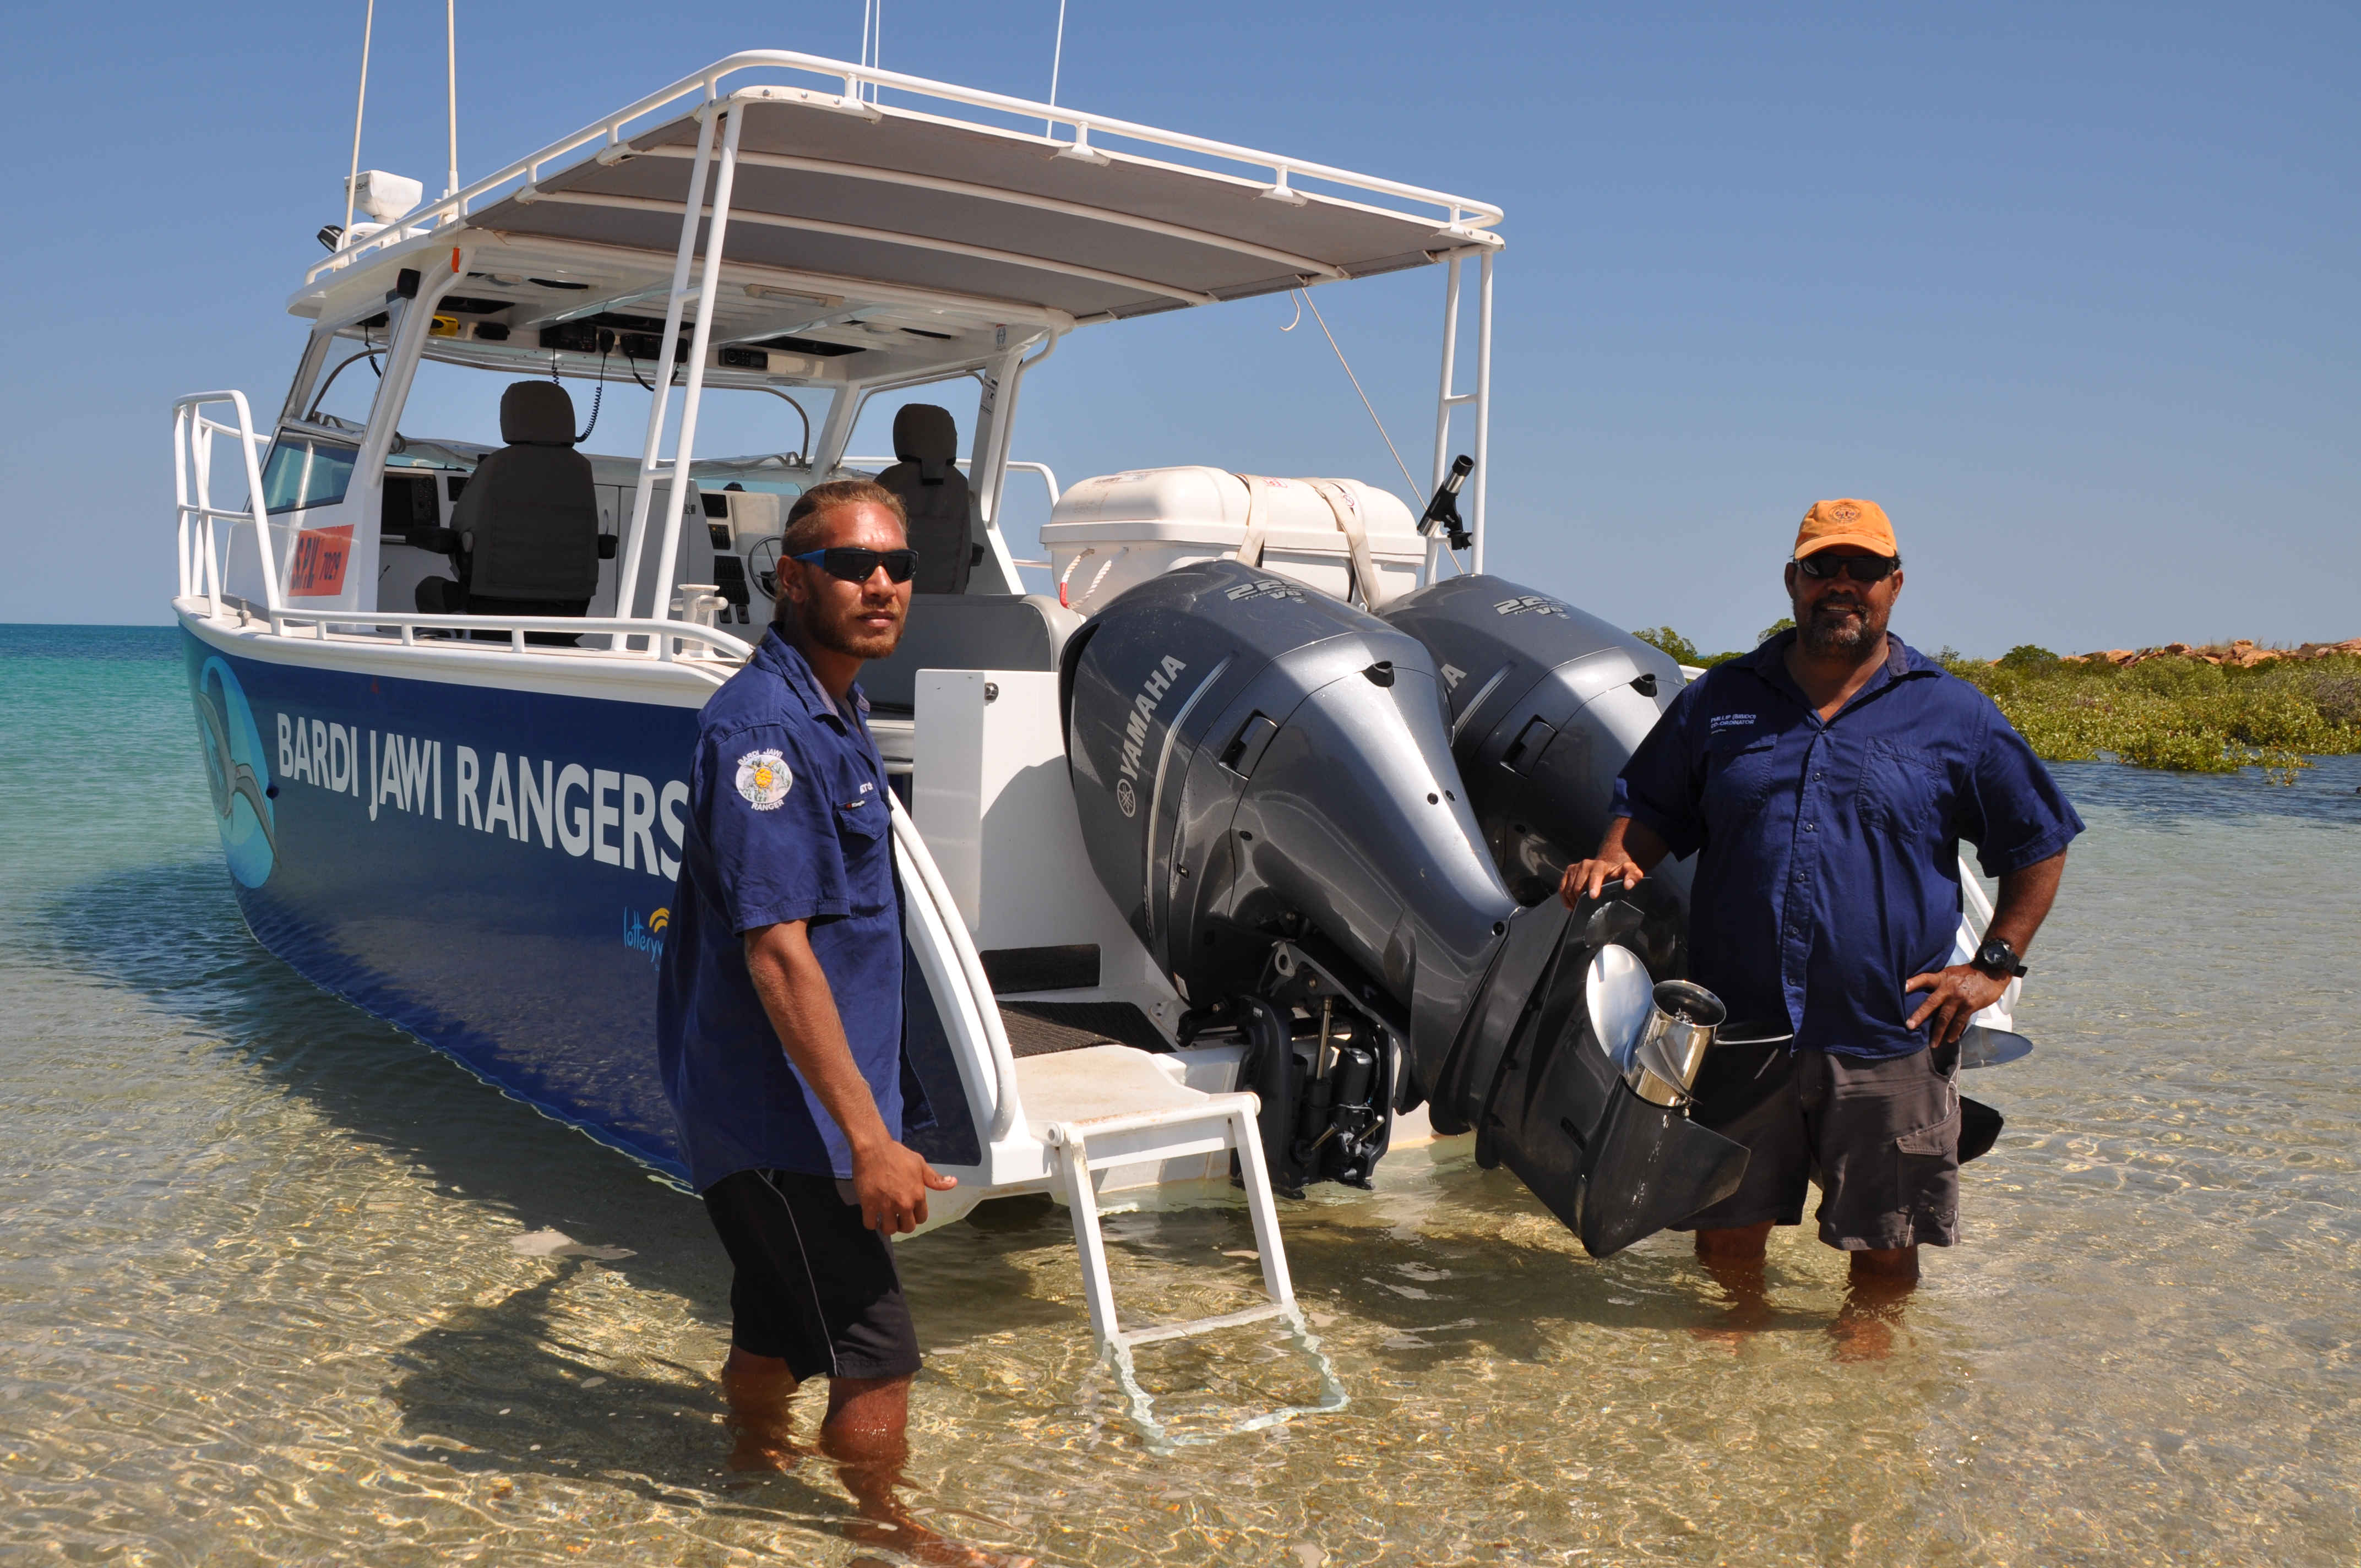 Two Bardi Jawi Indigenous rangers standing in front of a Bardi Jawi boat